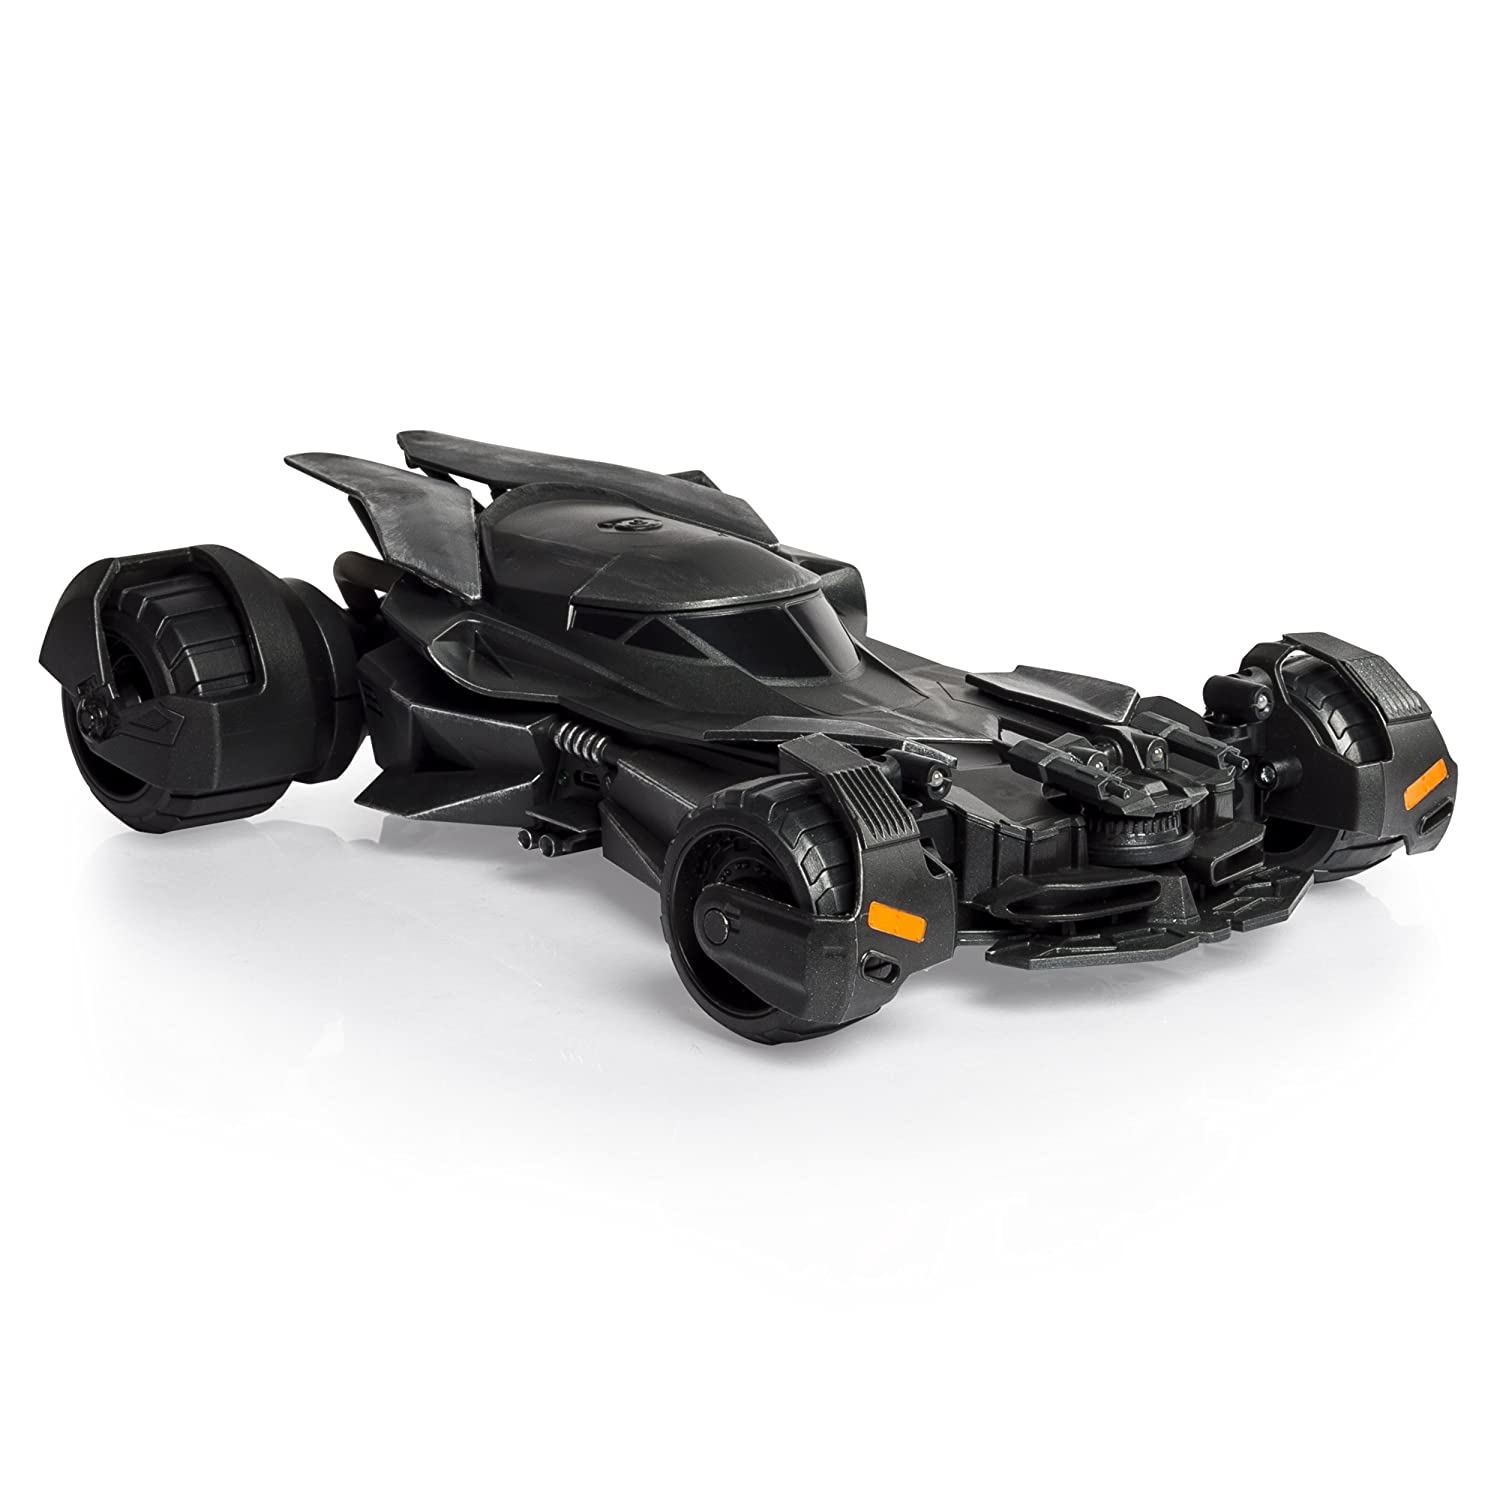 Air Hogs Batmobile Remote Control Vehicle Toys Games Toy Car Circuit